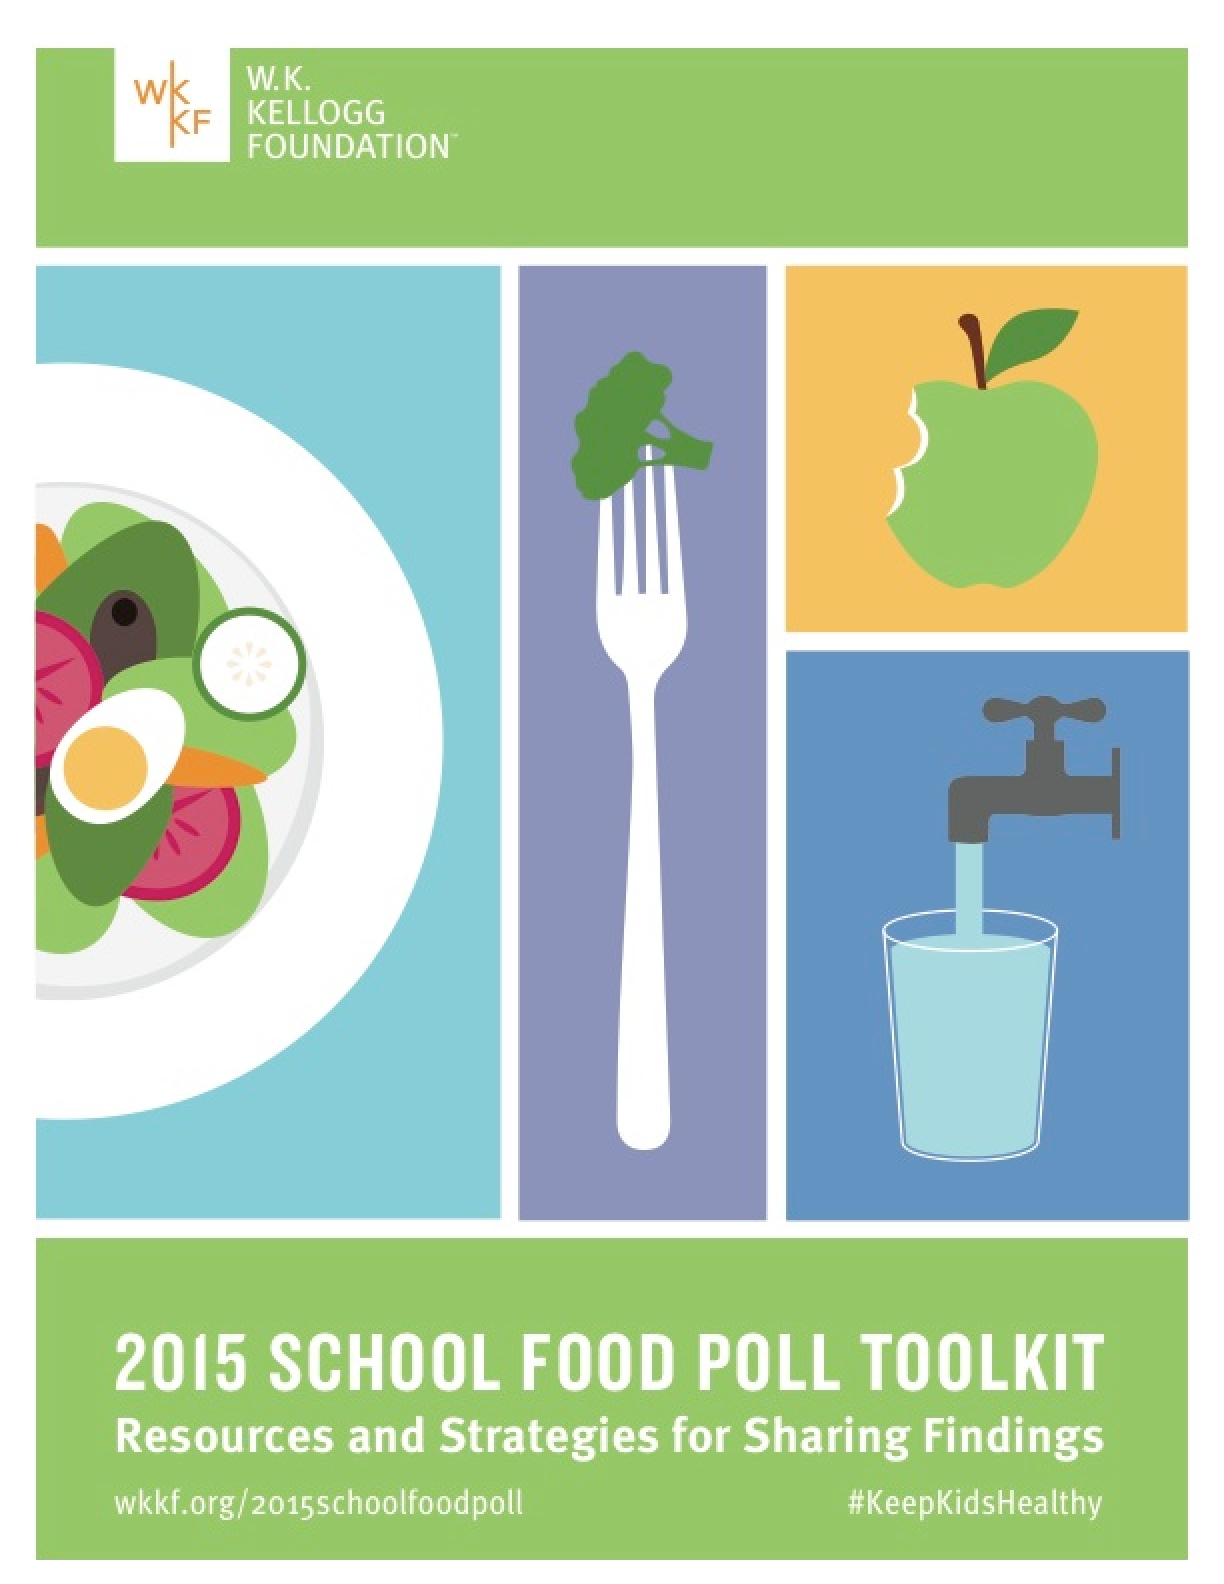 2015 School Food Poll Toolkit: Resources and Strategies for Sharing Findings